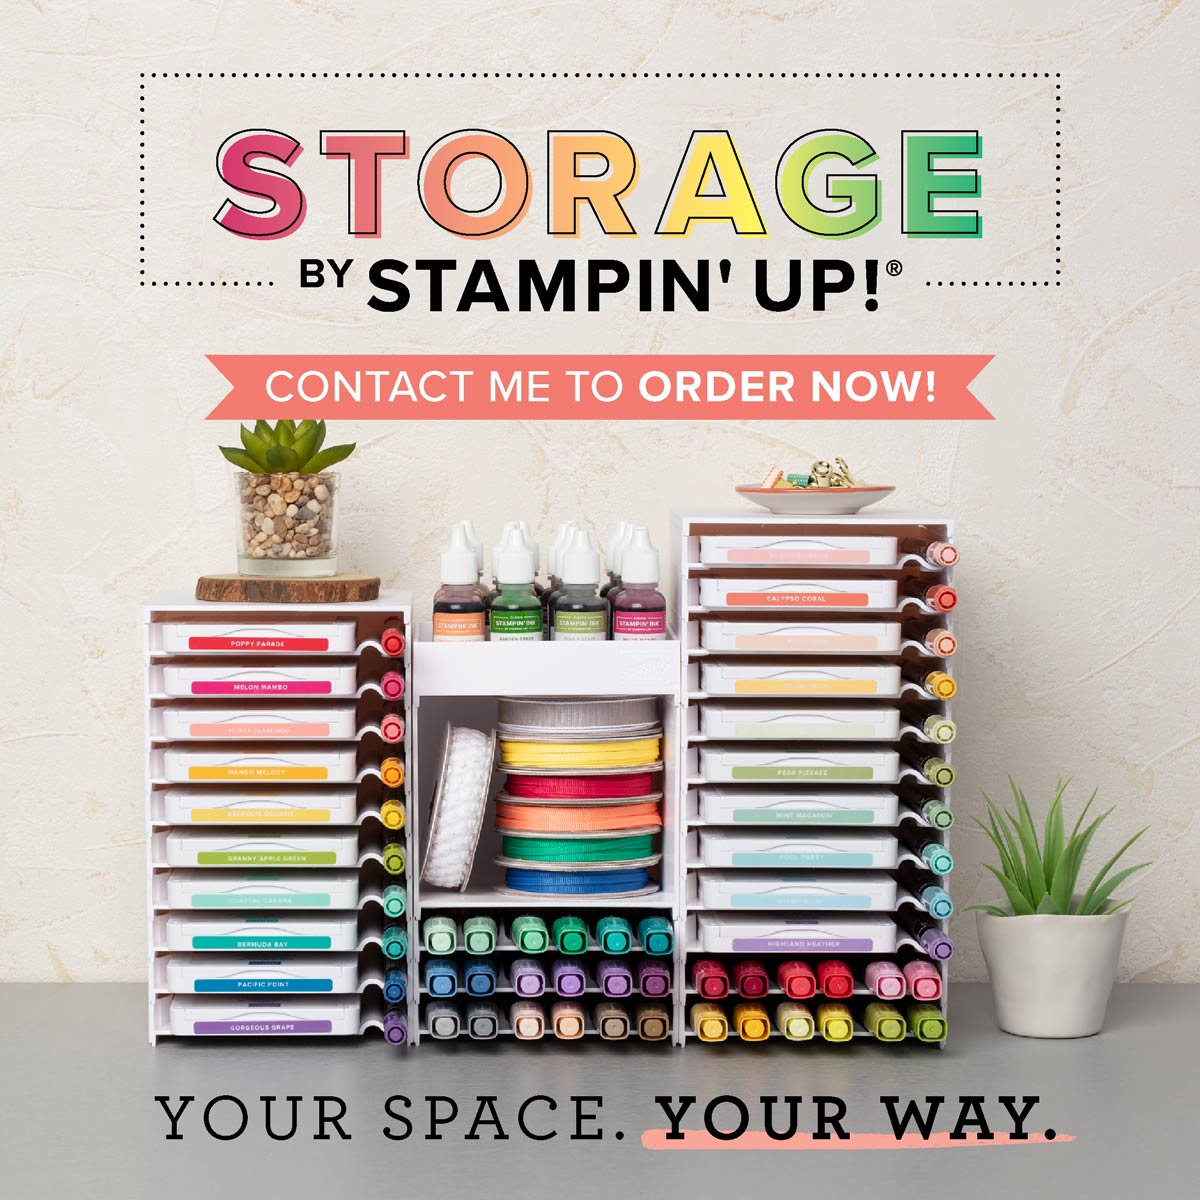 STORAGE by Stampin' Up!